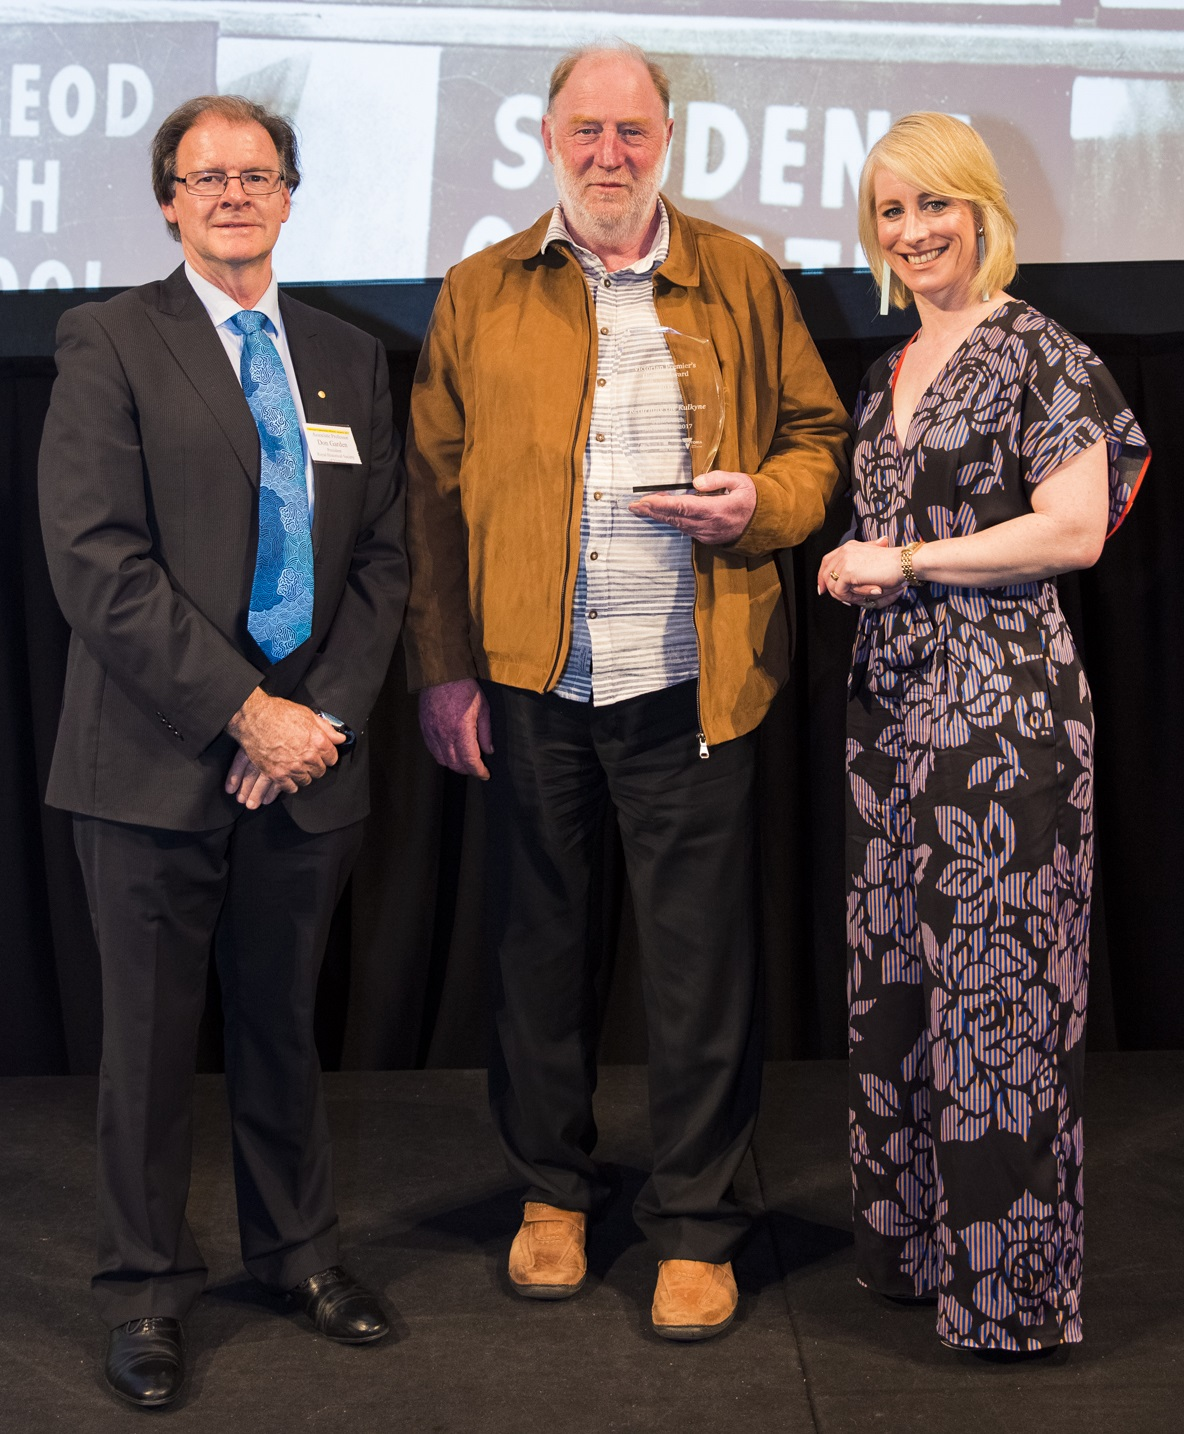 John Burch with Don Garden and Catherine Andrews at the 2017 Victorian Community History Awards